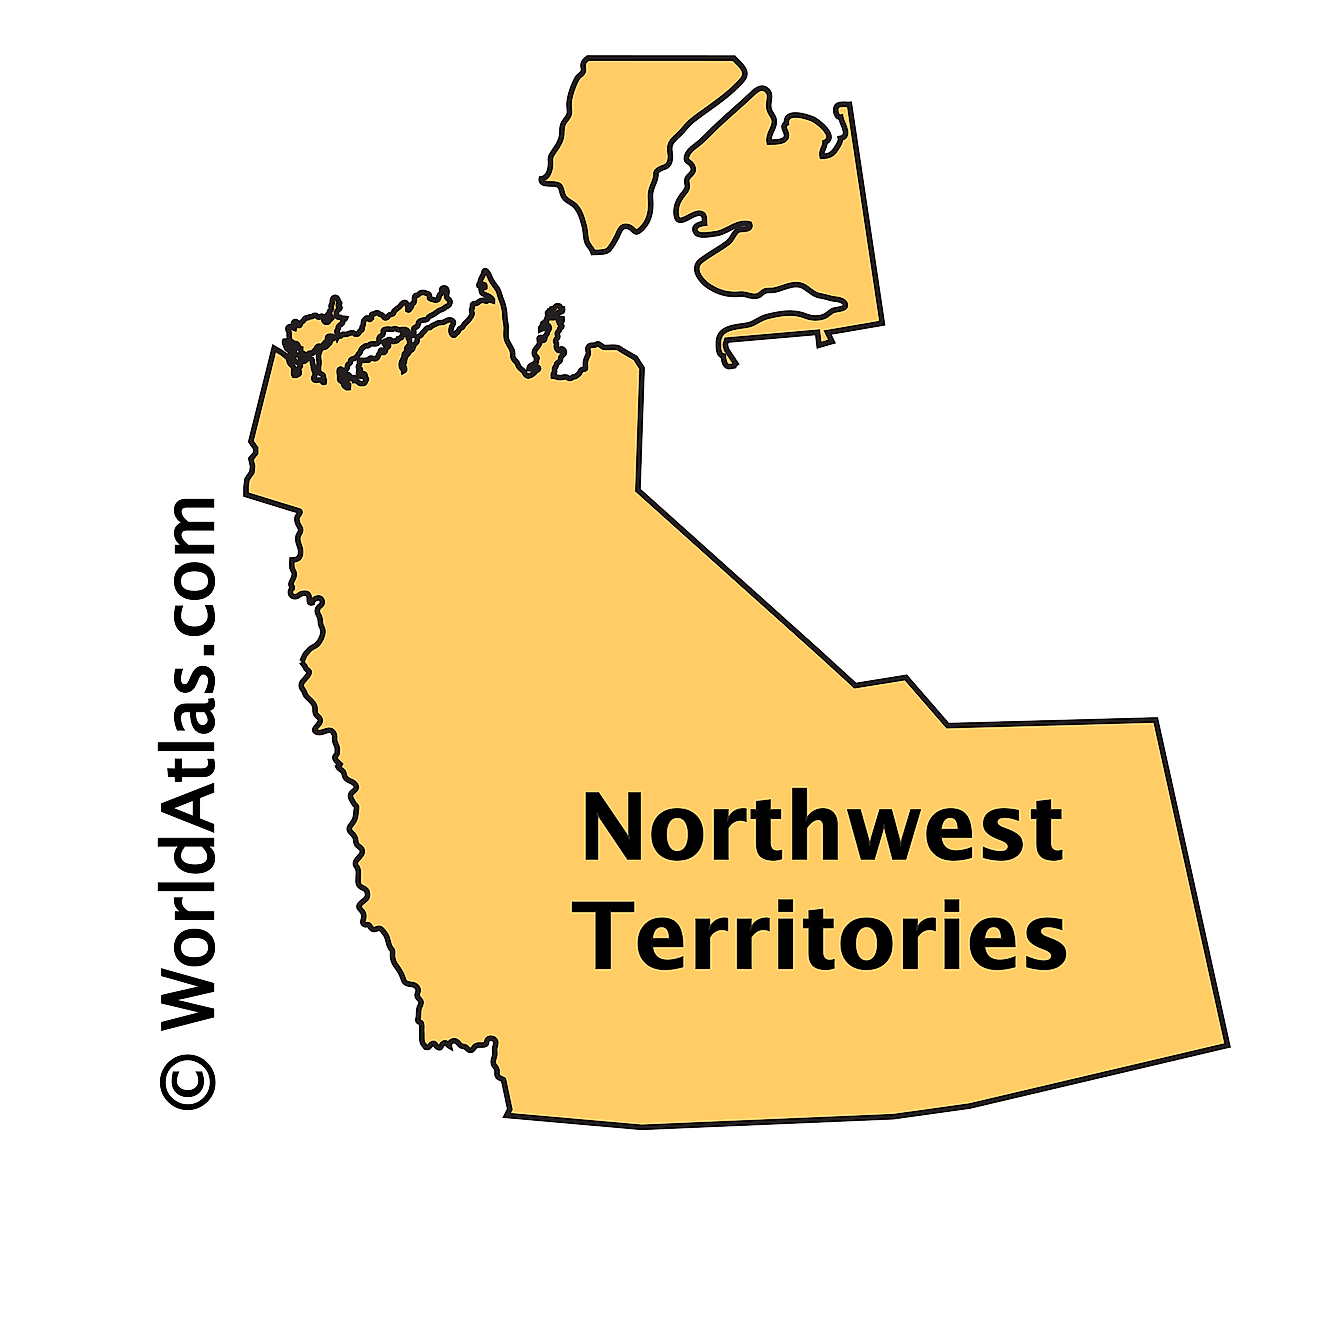 Outline Map of Northwest Territories